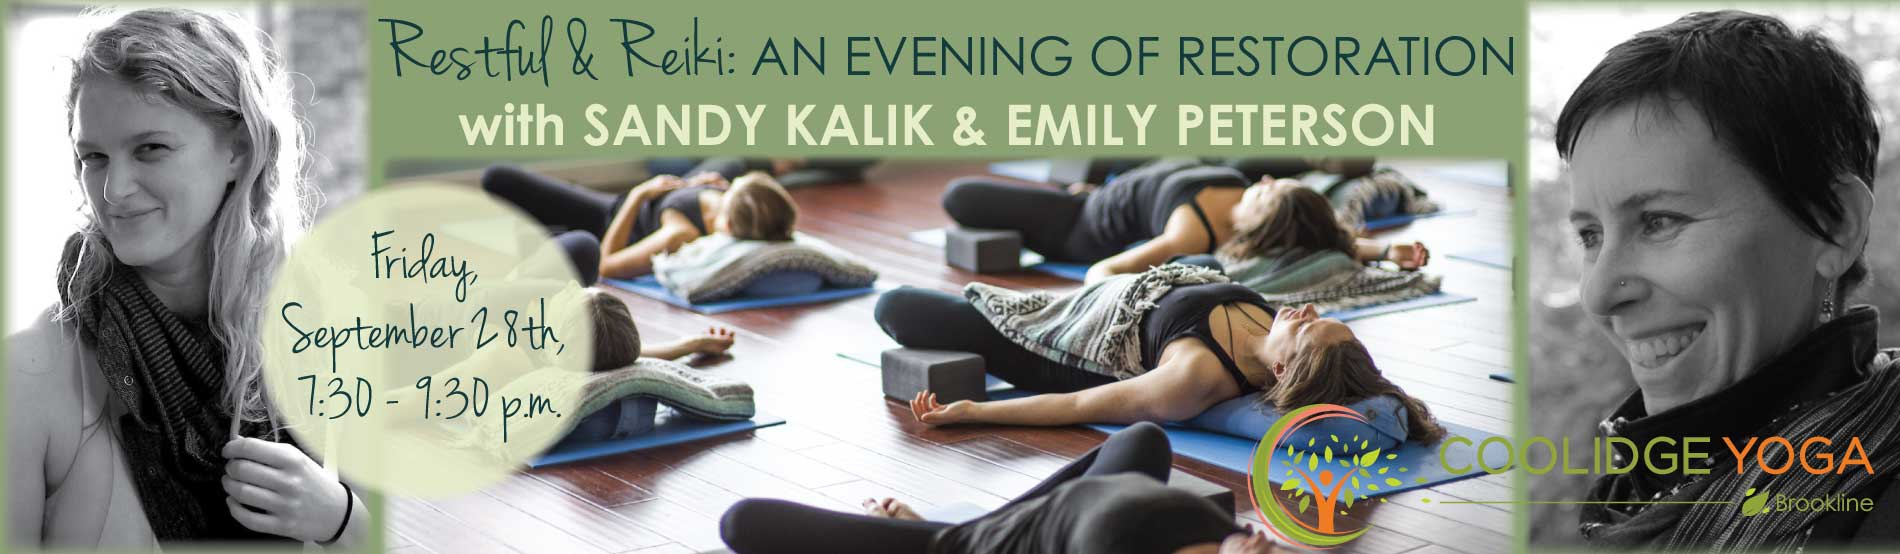 Restful and Reiki Workshop with Emily Peterson and Sandy Kalik